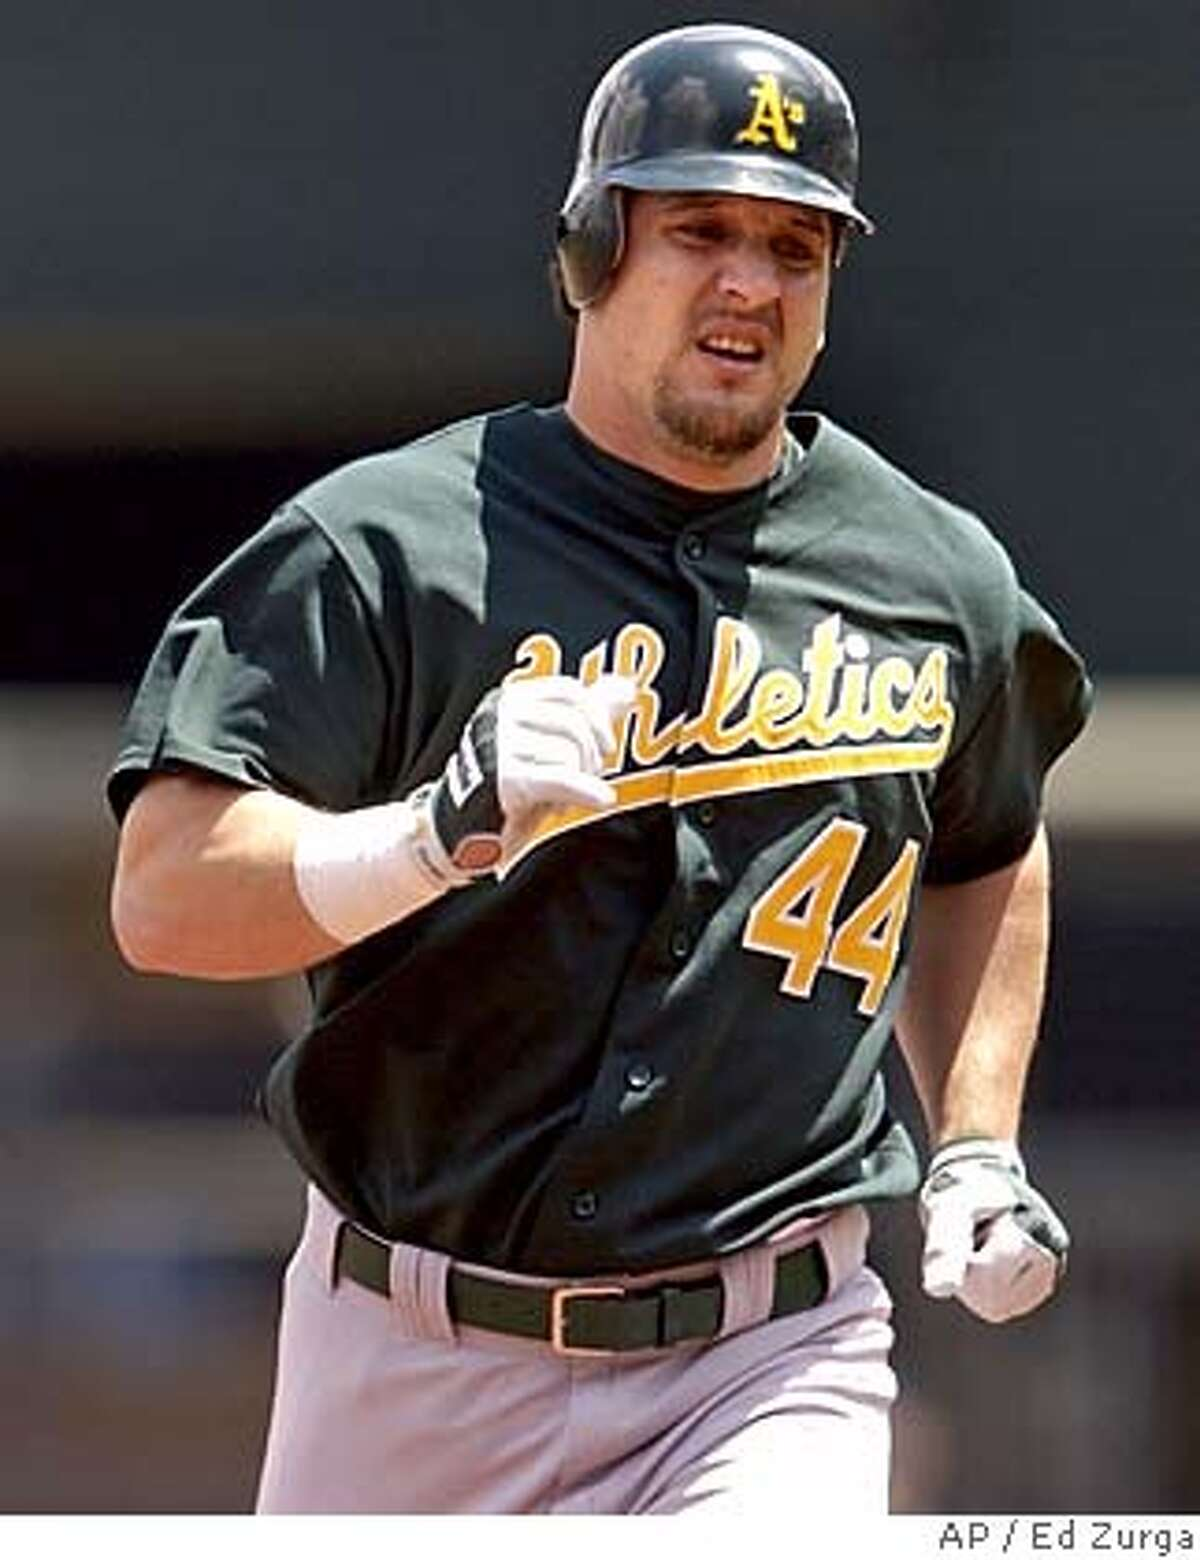 Oakland Athletics' Erubiel Durazo (44) prepares to round third past Kansas City Royals third baseman Desi Relaford after hitting a two-run home run in the first inning Tuesday, July 22, 2003, in Kansas City, Mo. (AP Photo/Ed Zurga) Durazo Durazo ProductNameChronicle Also ran 03/04/04 Erubiel Durazo suddenly has become a base stealer, having swiped three bases this spring -- matching his career regular-season total. DH Erubiel Durazo has a .347 average in spring training. CAT RESIZES AND MOVES INSIDE FOR 5STAR